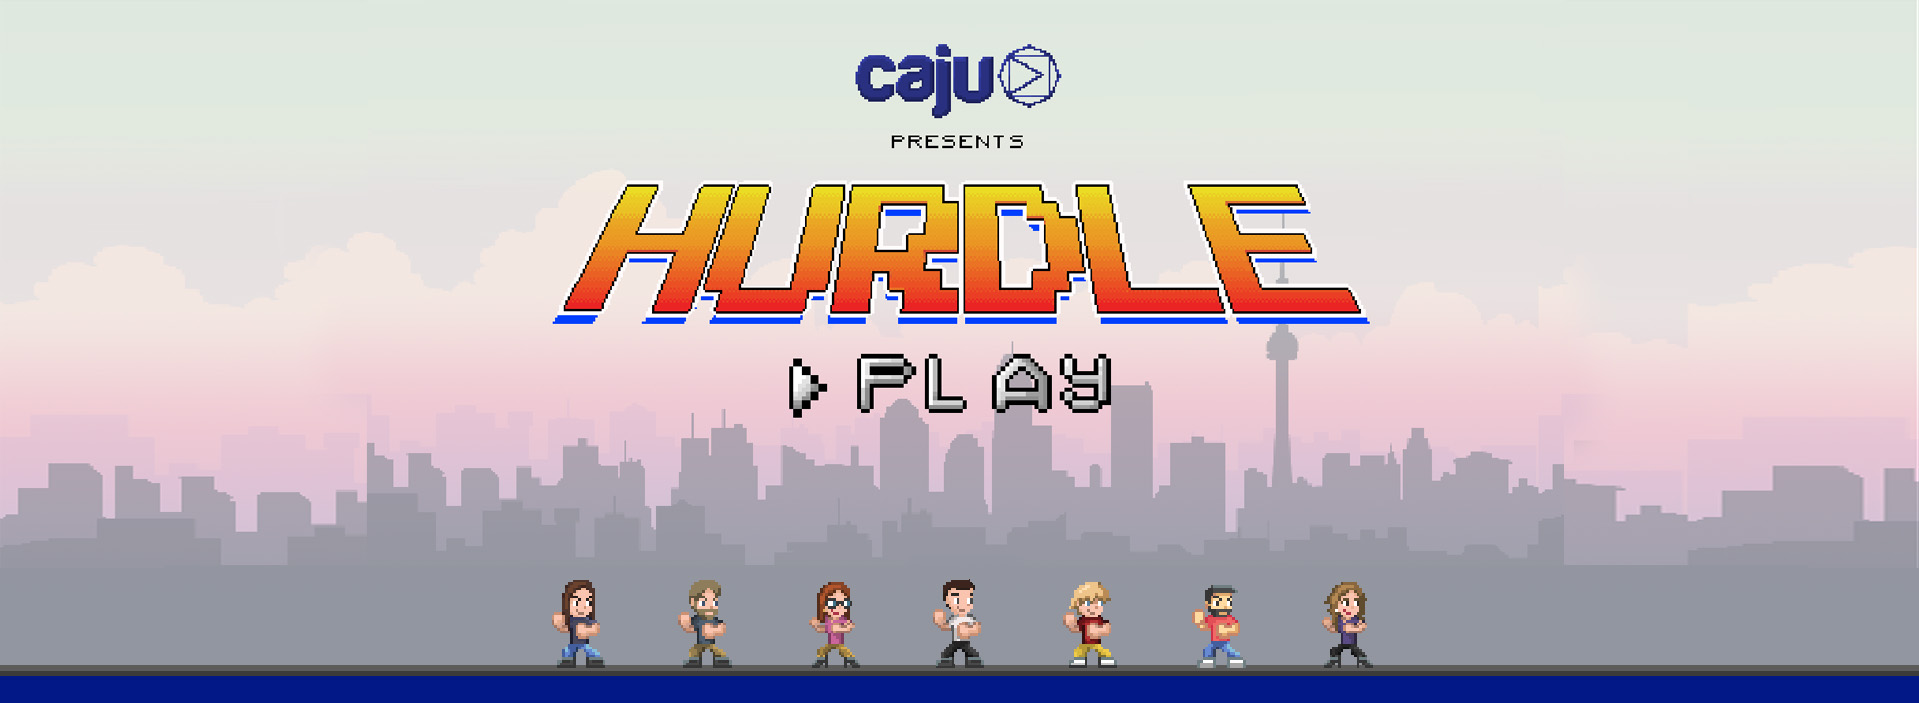 Caju Hurdle game with all employees background image